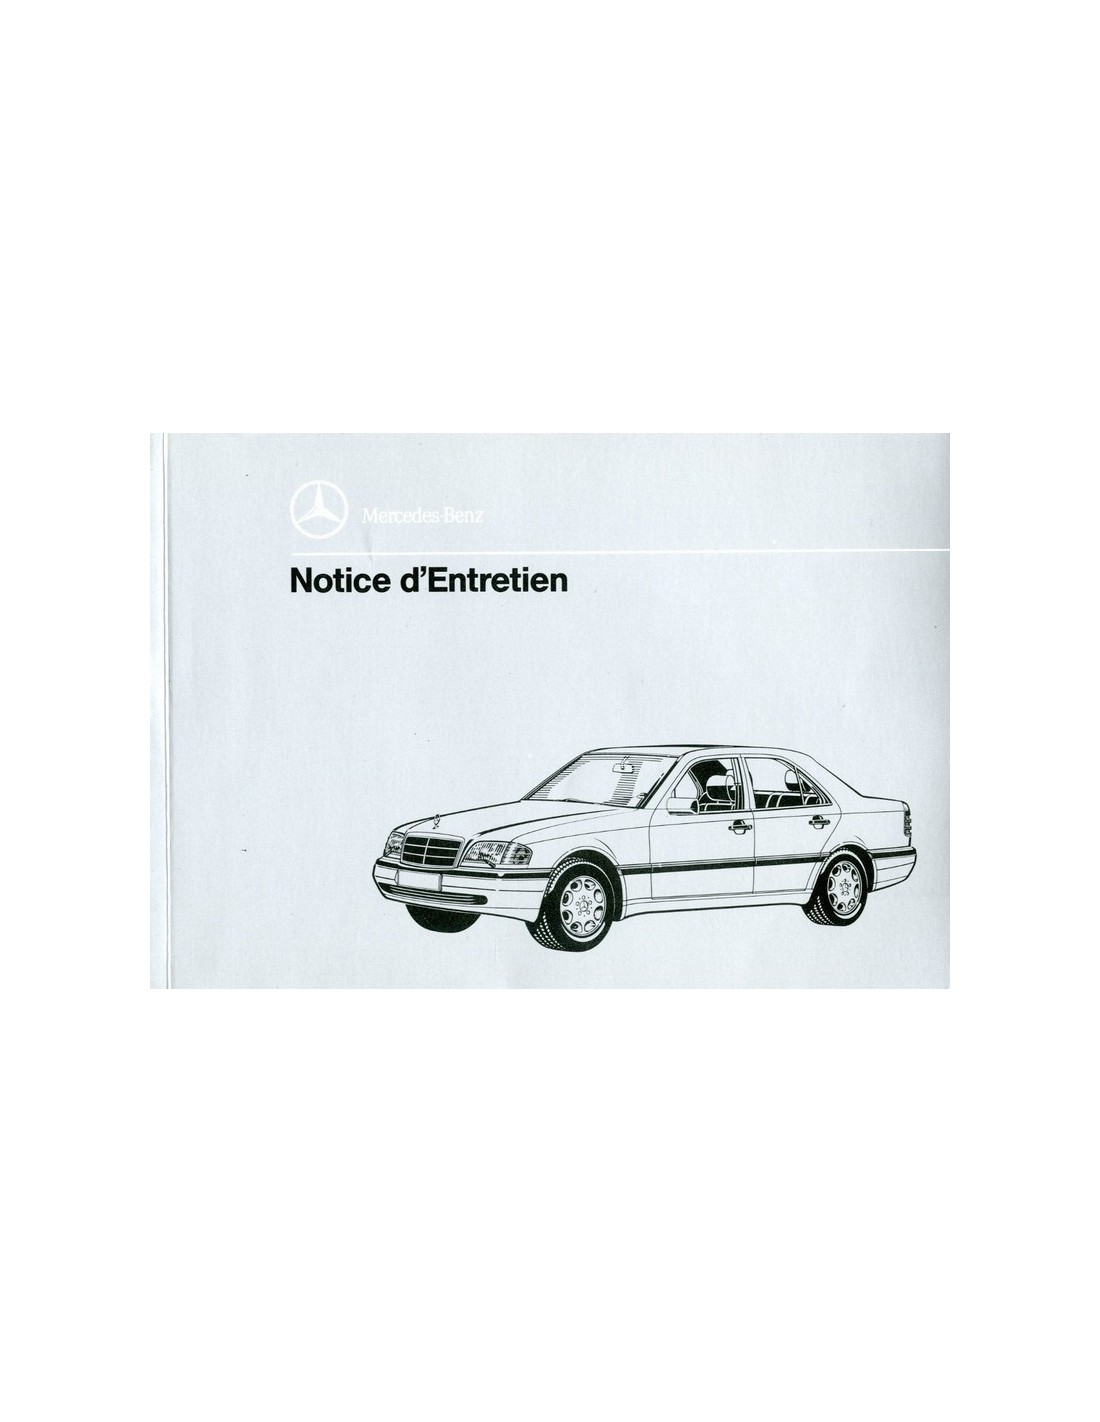 1996 mercedes benz c class owners manual french for Mercedes benz c class owners manual